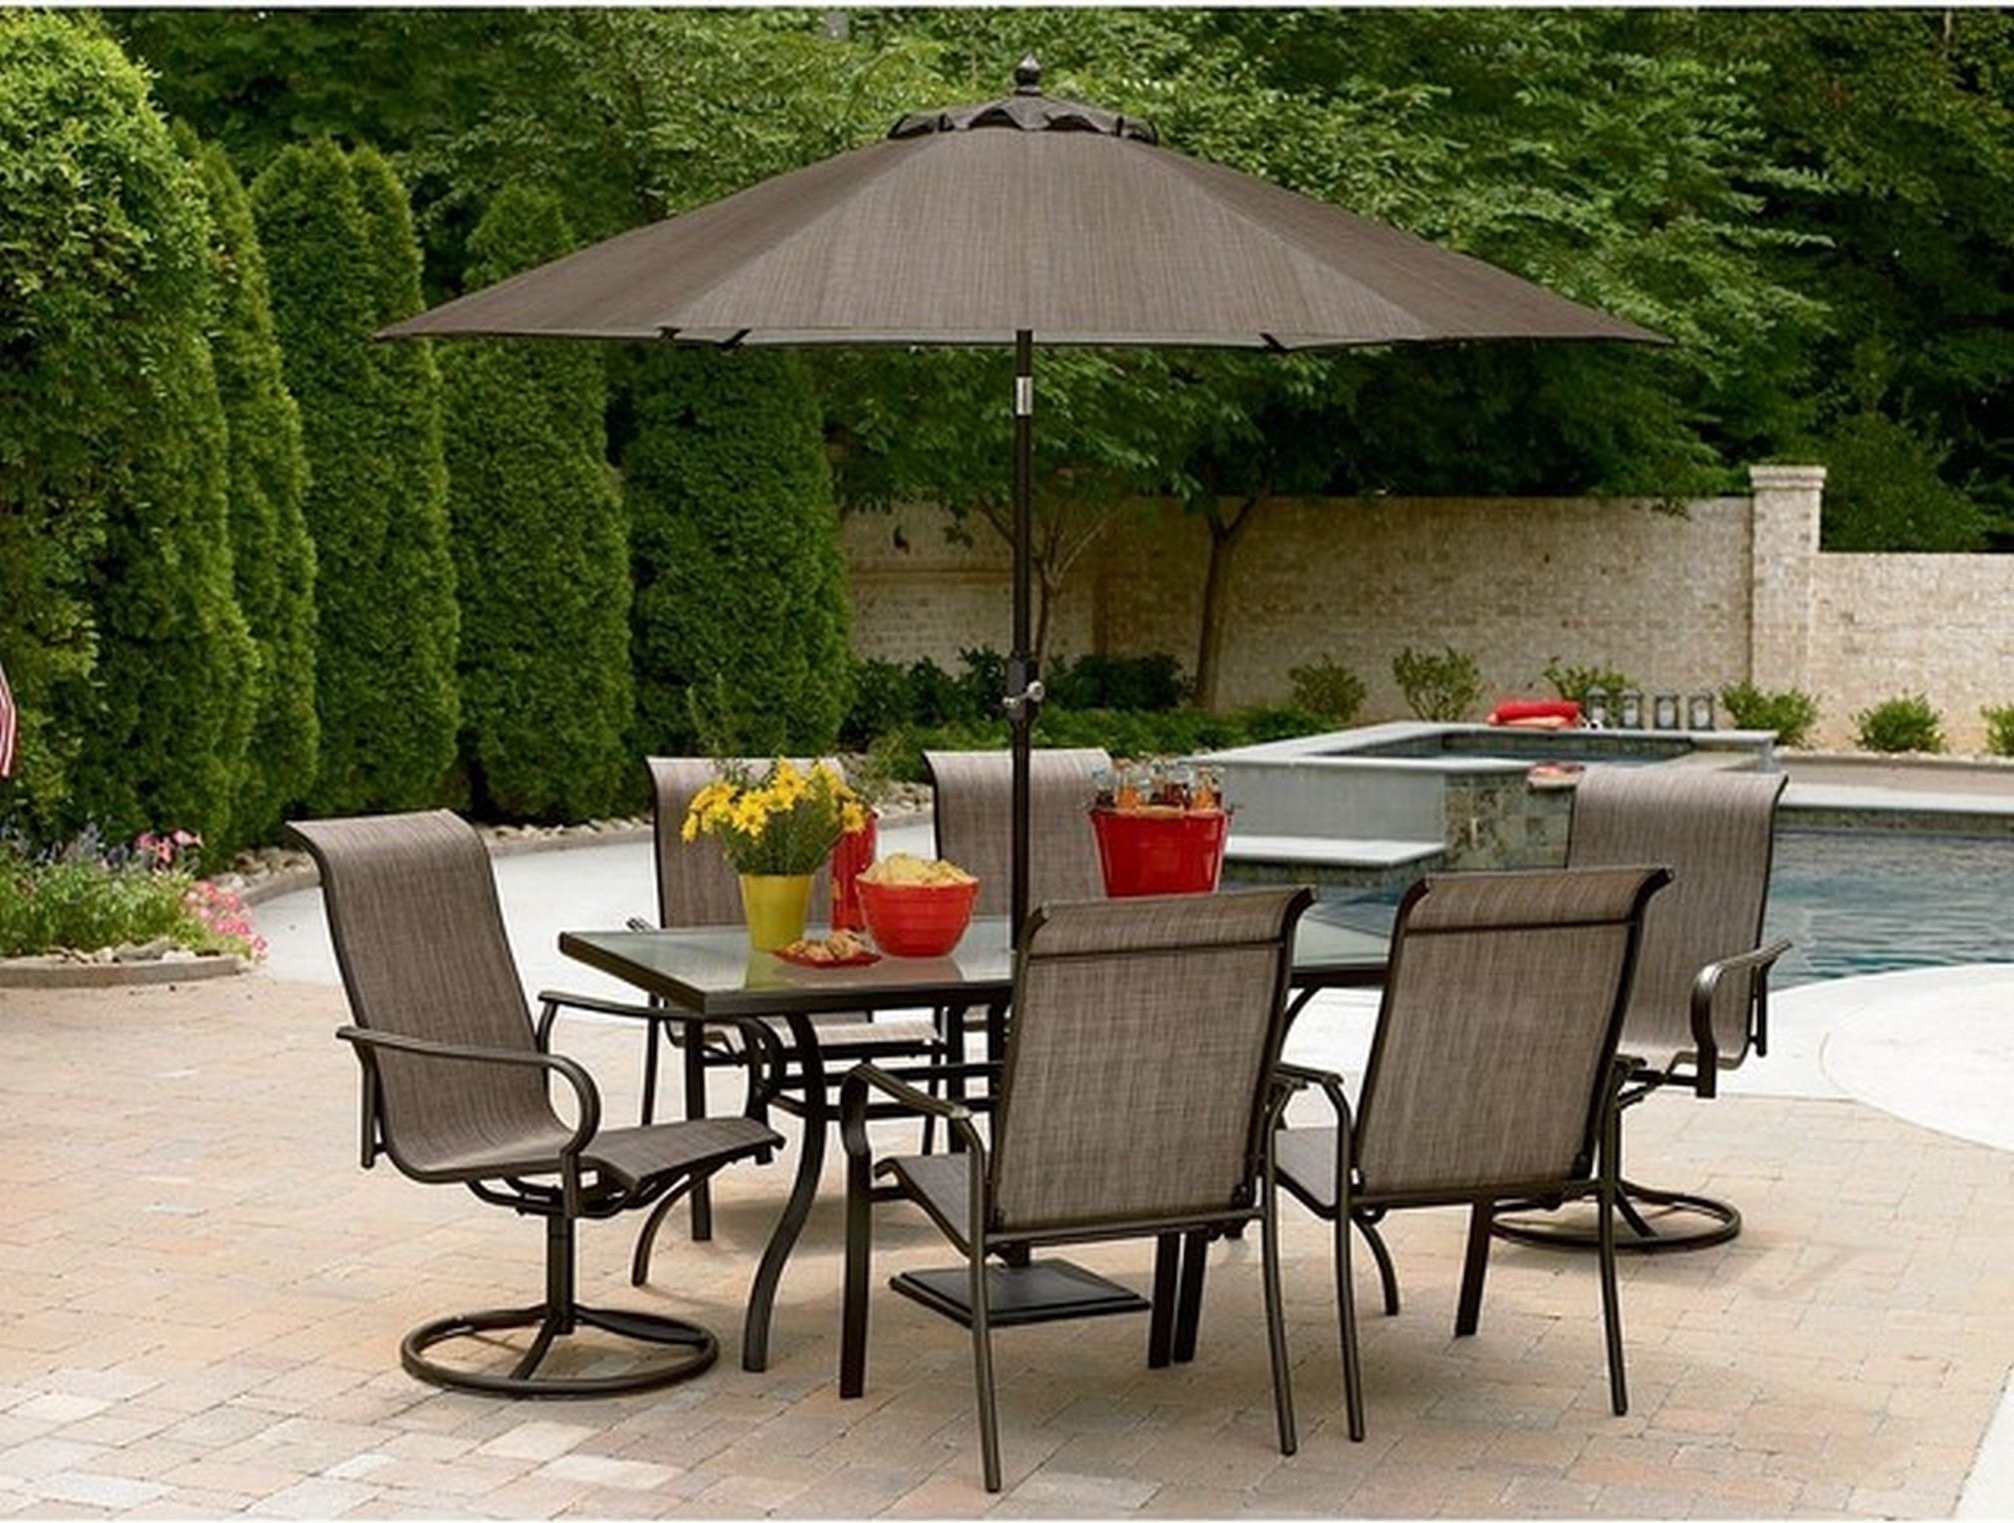 Widely Used Interior : Patio Furniture Sale Stylish Outdoor Table Sets Lovely Throughout Patio Furniture Sets With Umbrellas (View 4 of 20)